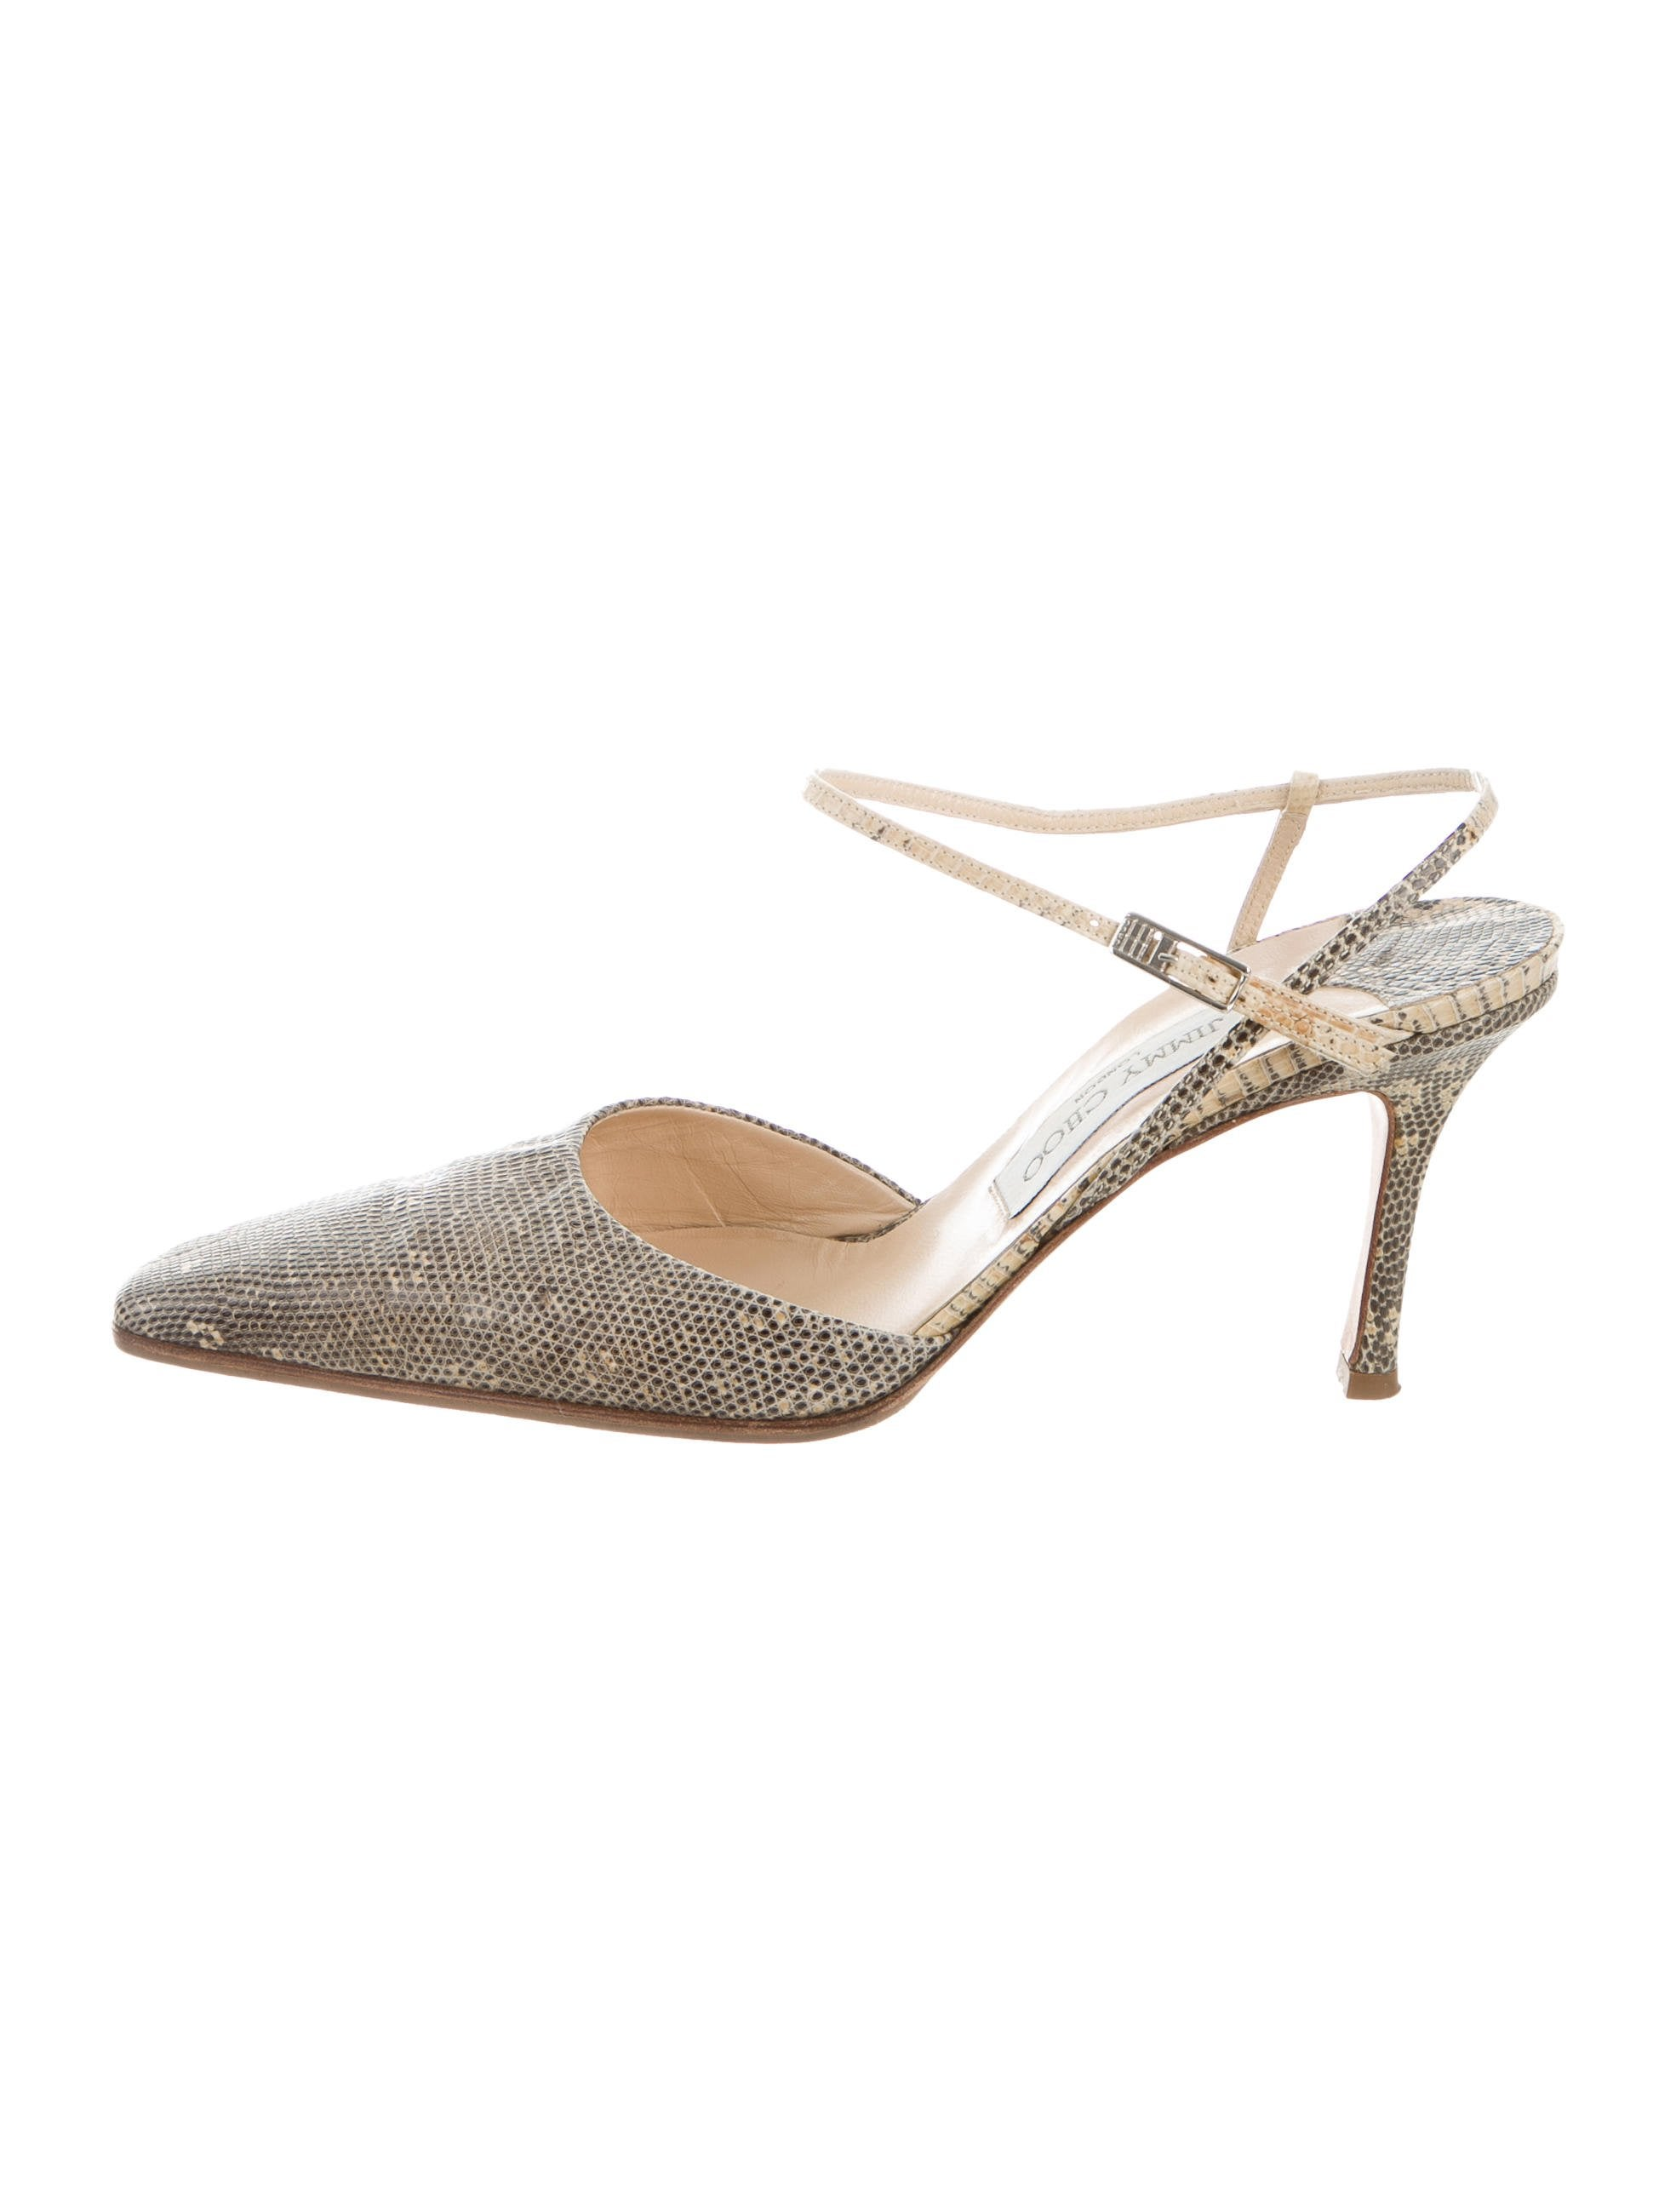 shopping online original countdown package for sale Jimmy Choo Lizard Pointed-Toe Pumps new styles cheap price wUdnlDN